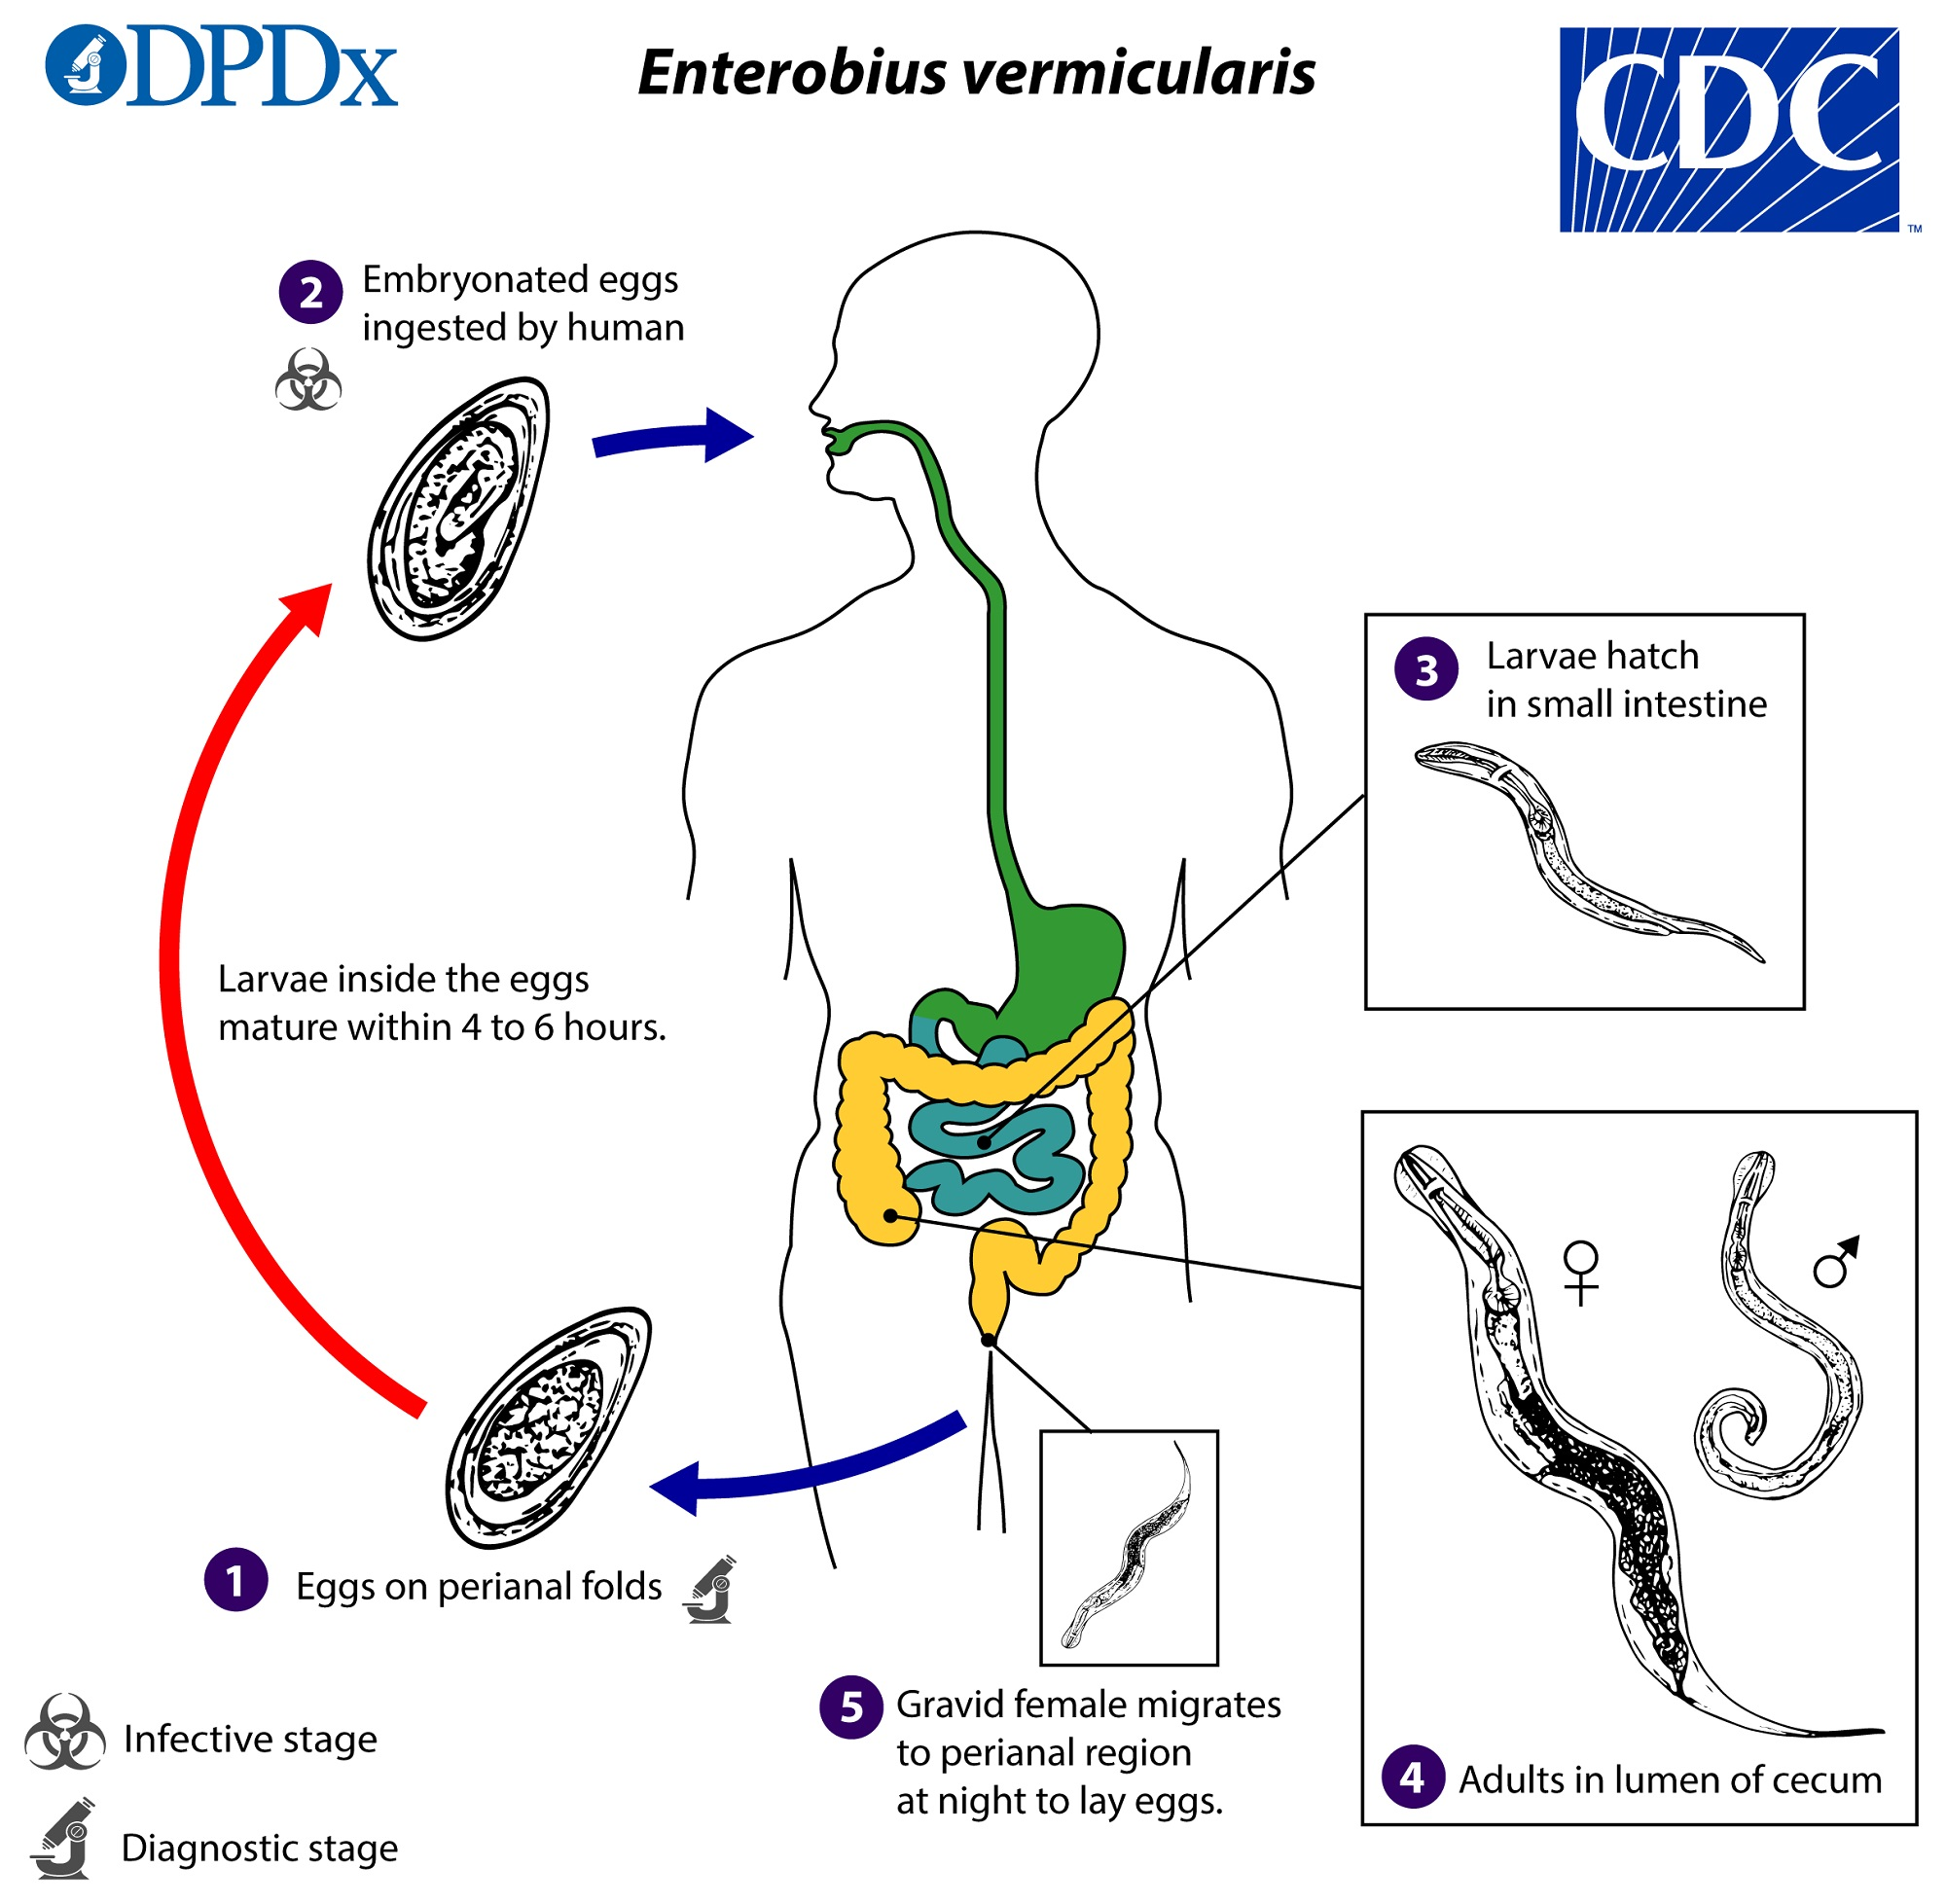 enterobius vermicularis virulence factors